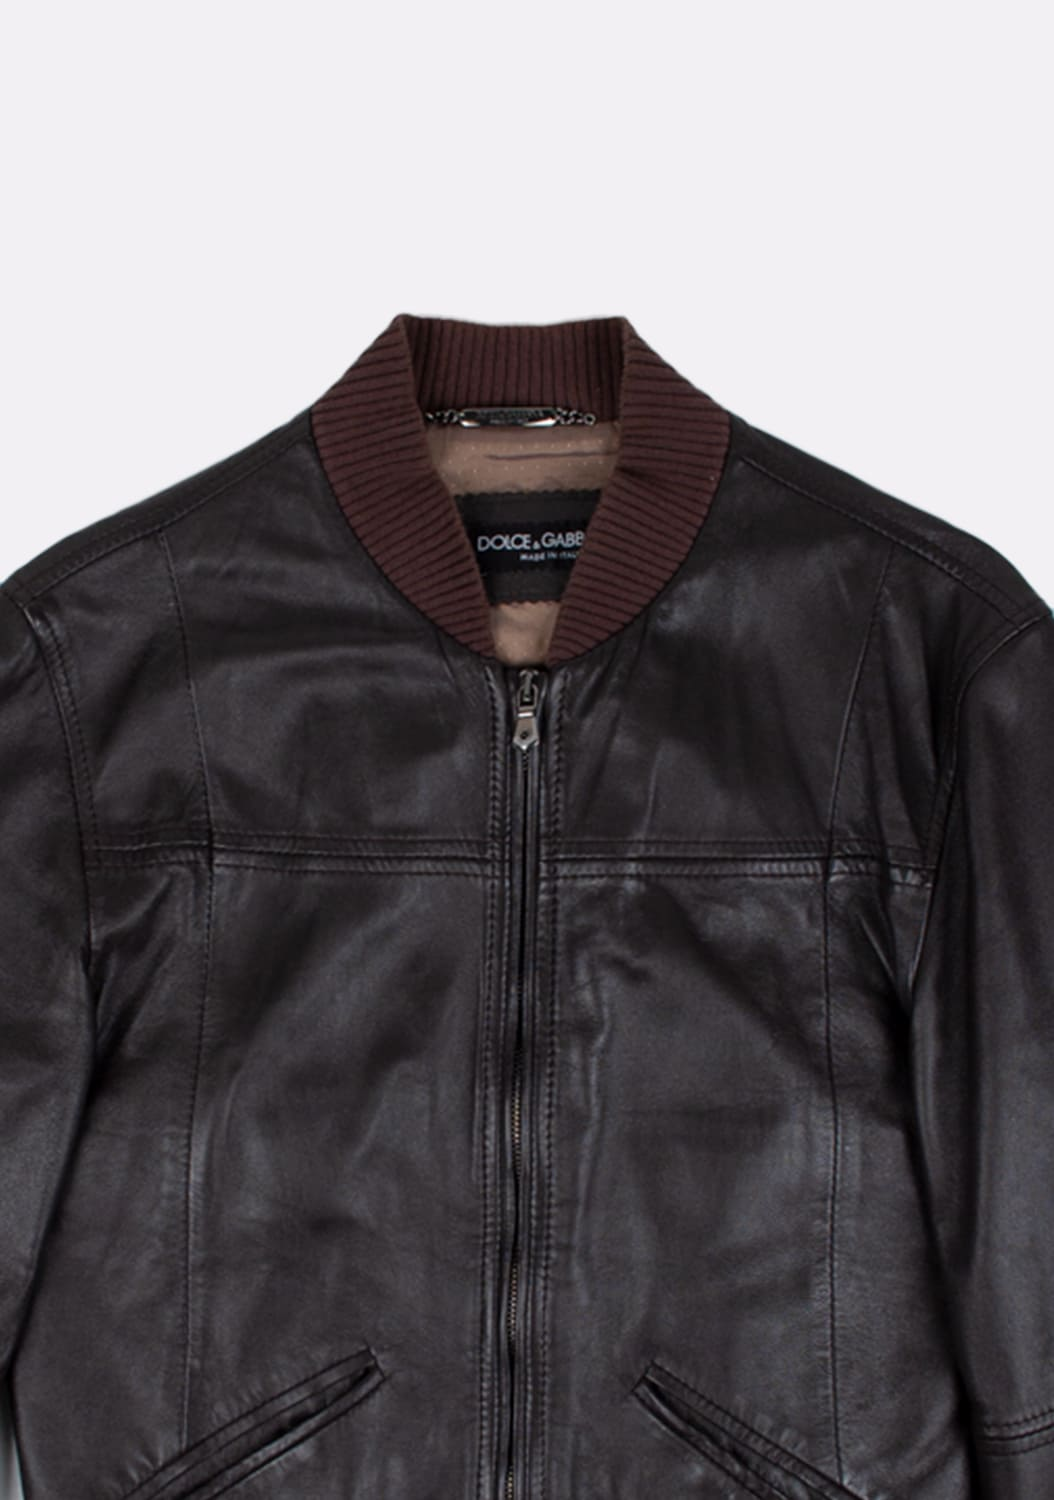 Dolce&Gabbana-Leather-Bomber-Men-Jacket-Size 46-ITA-urocklt (1)